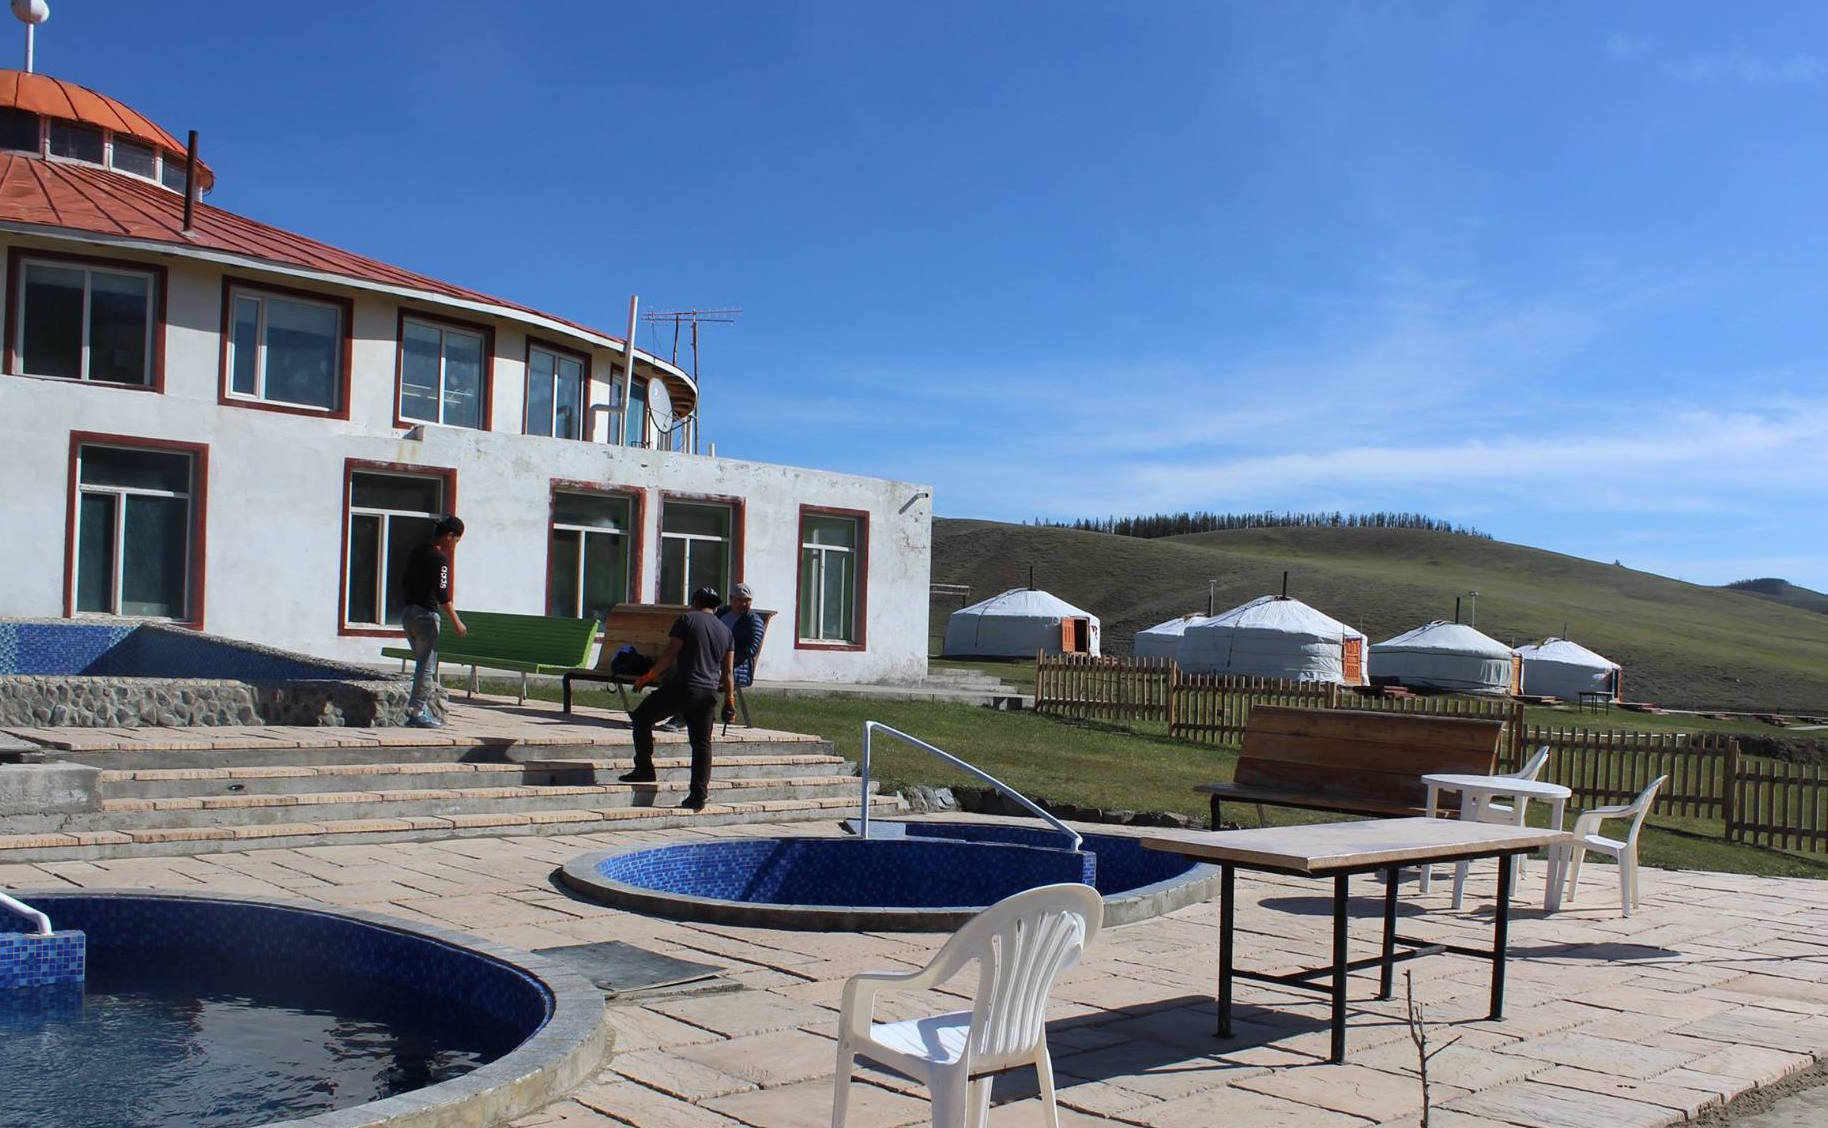 In this tourist resort in central Mongolia, water from natural hot springs is pumped into swimming pools and used for showers.